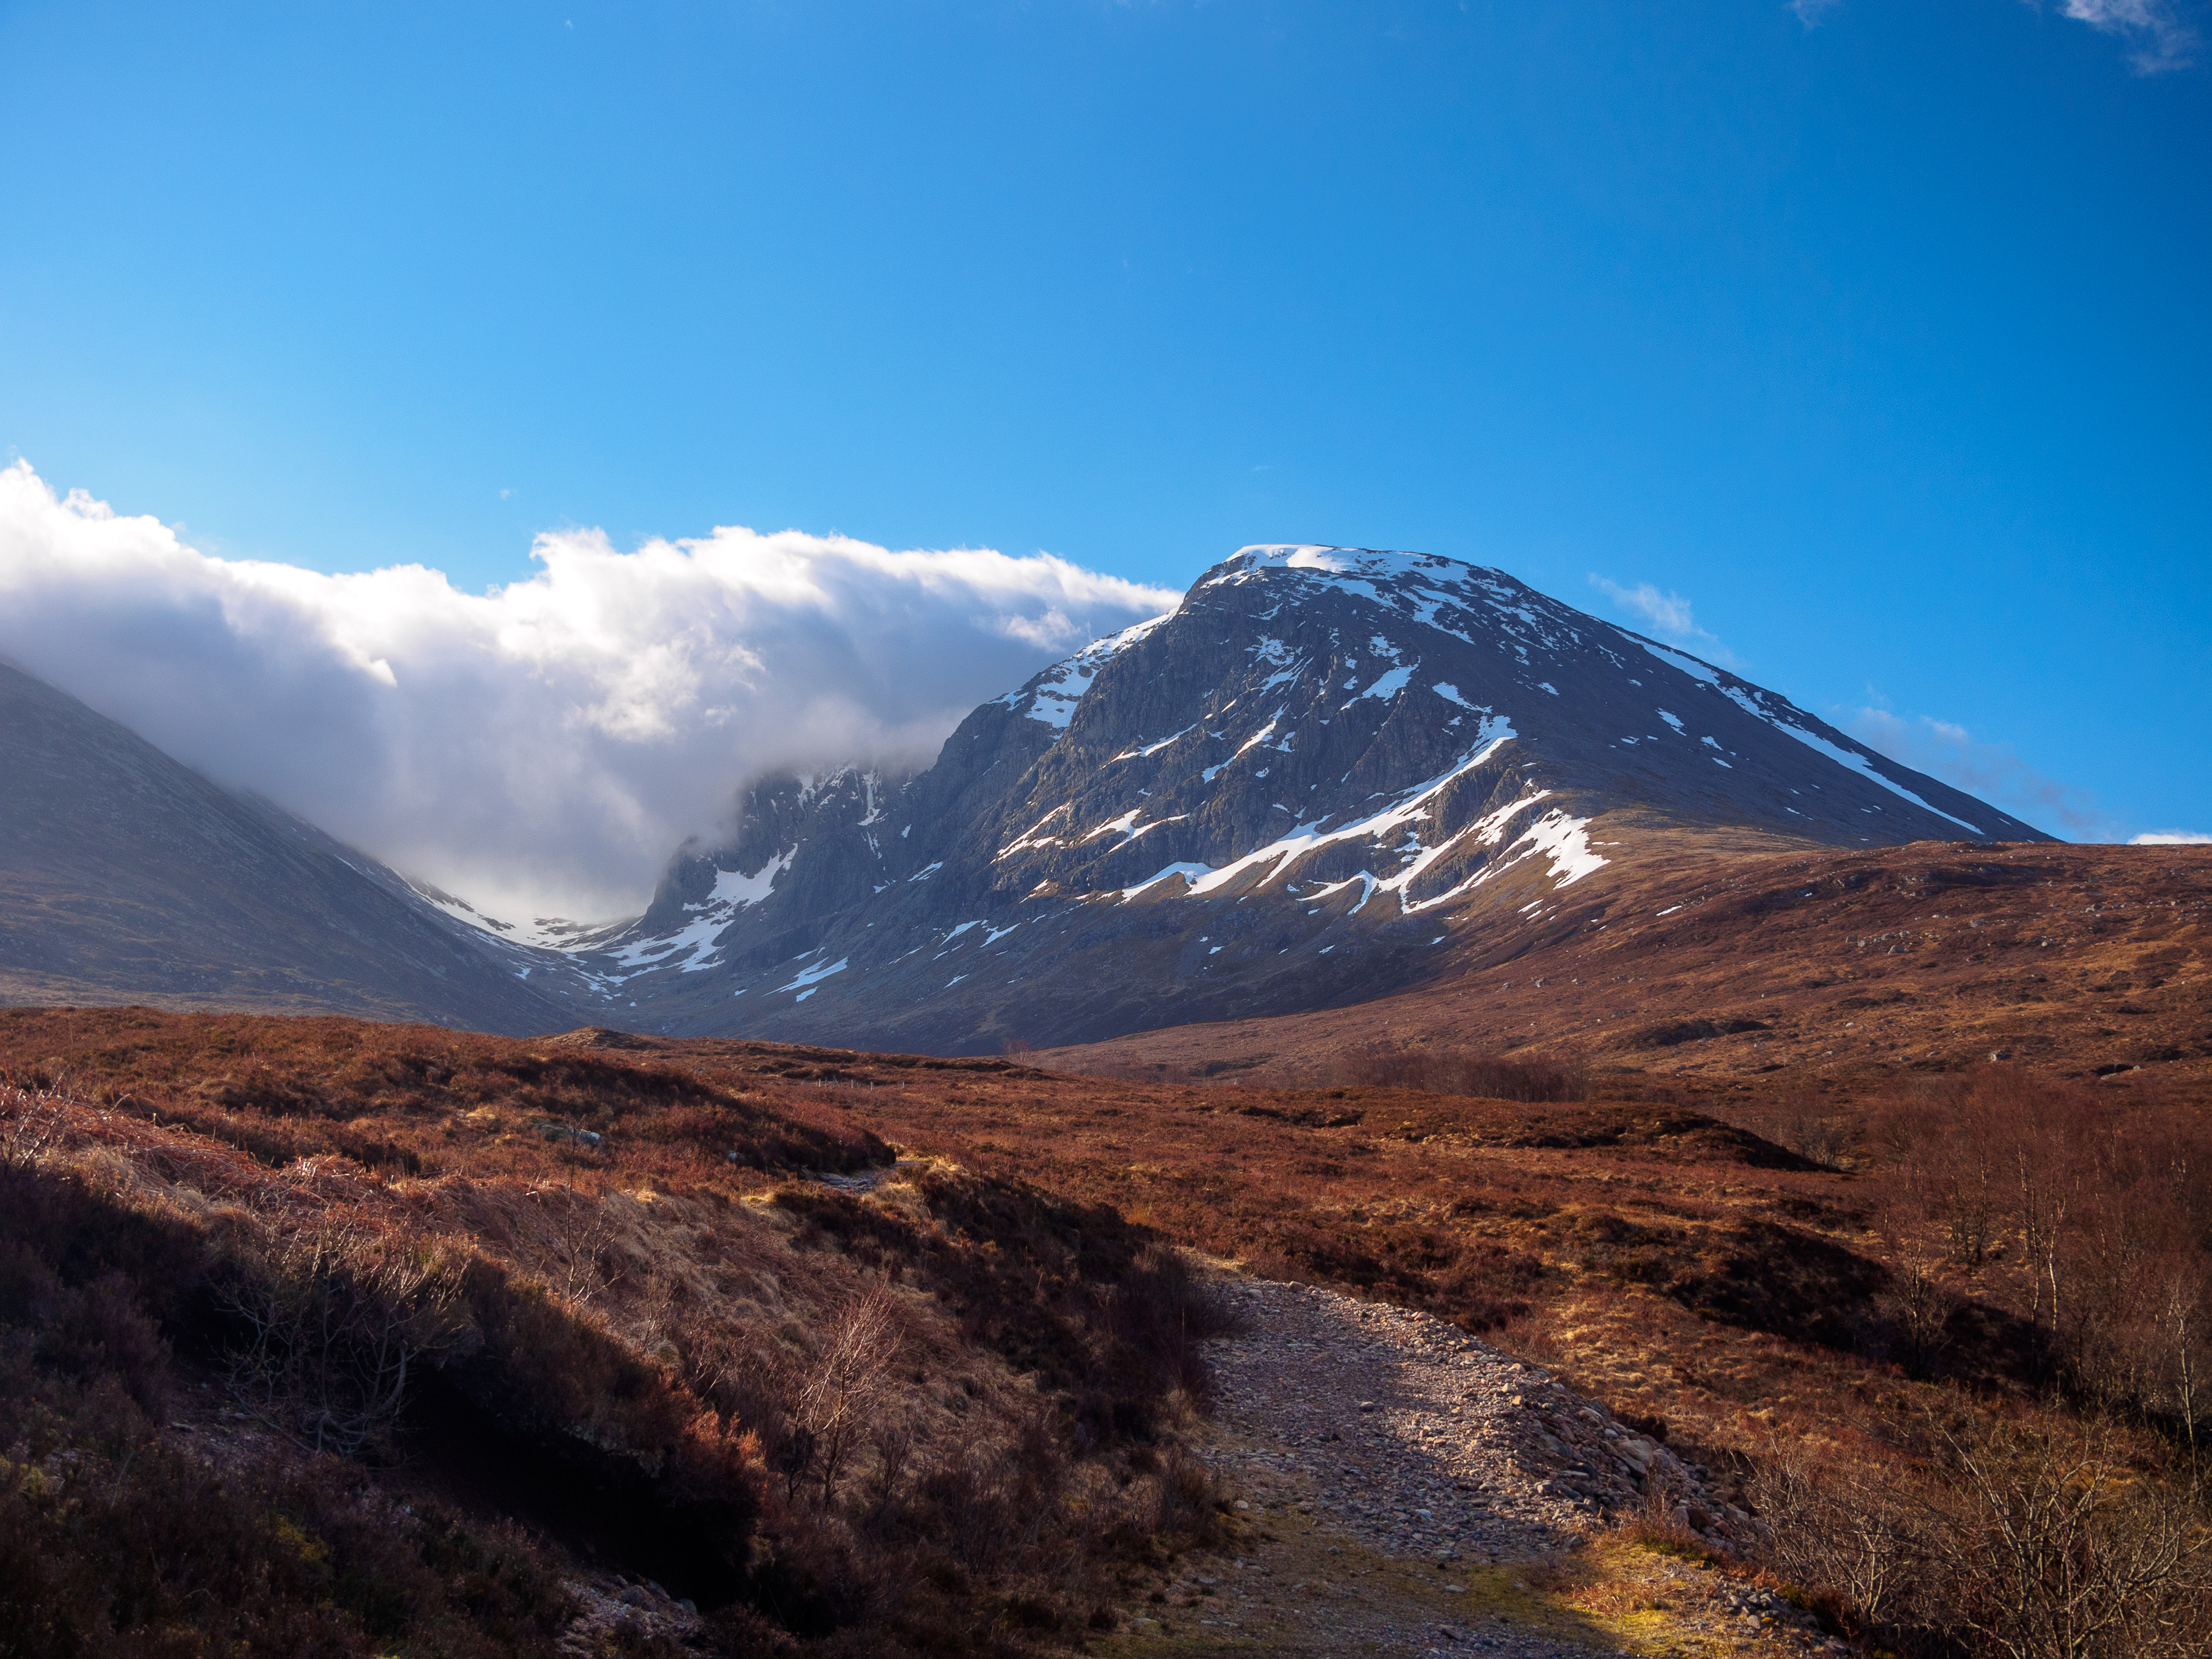 Hire a Carn Mor Dearg Arete Guide from Lochaber Guides. We'll guide you on the CMD Arete and on to Ben Nevis on this amazing route. Ben Nevis Guide